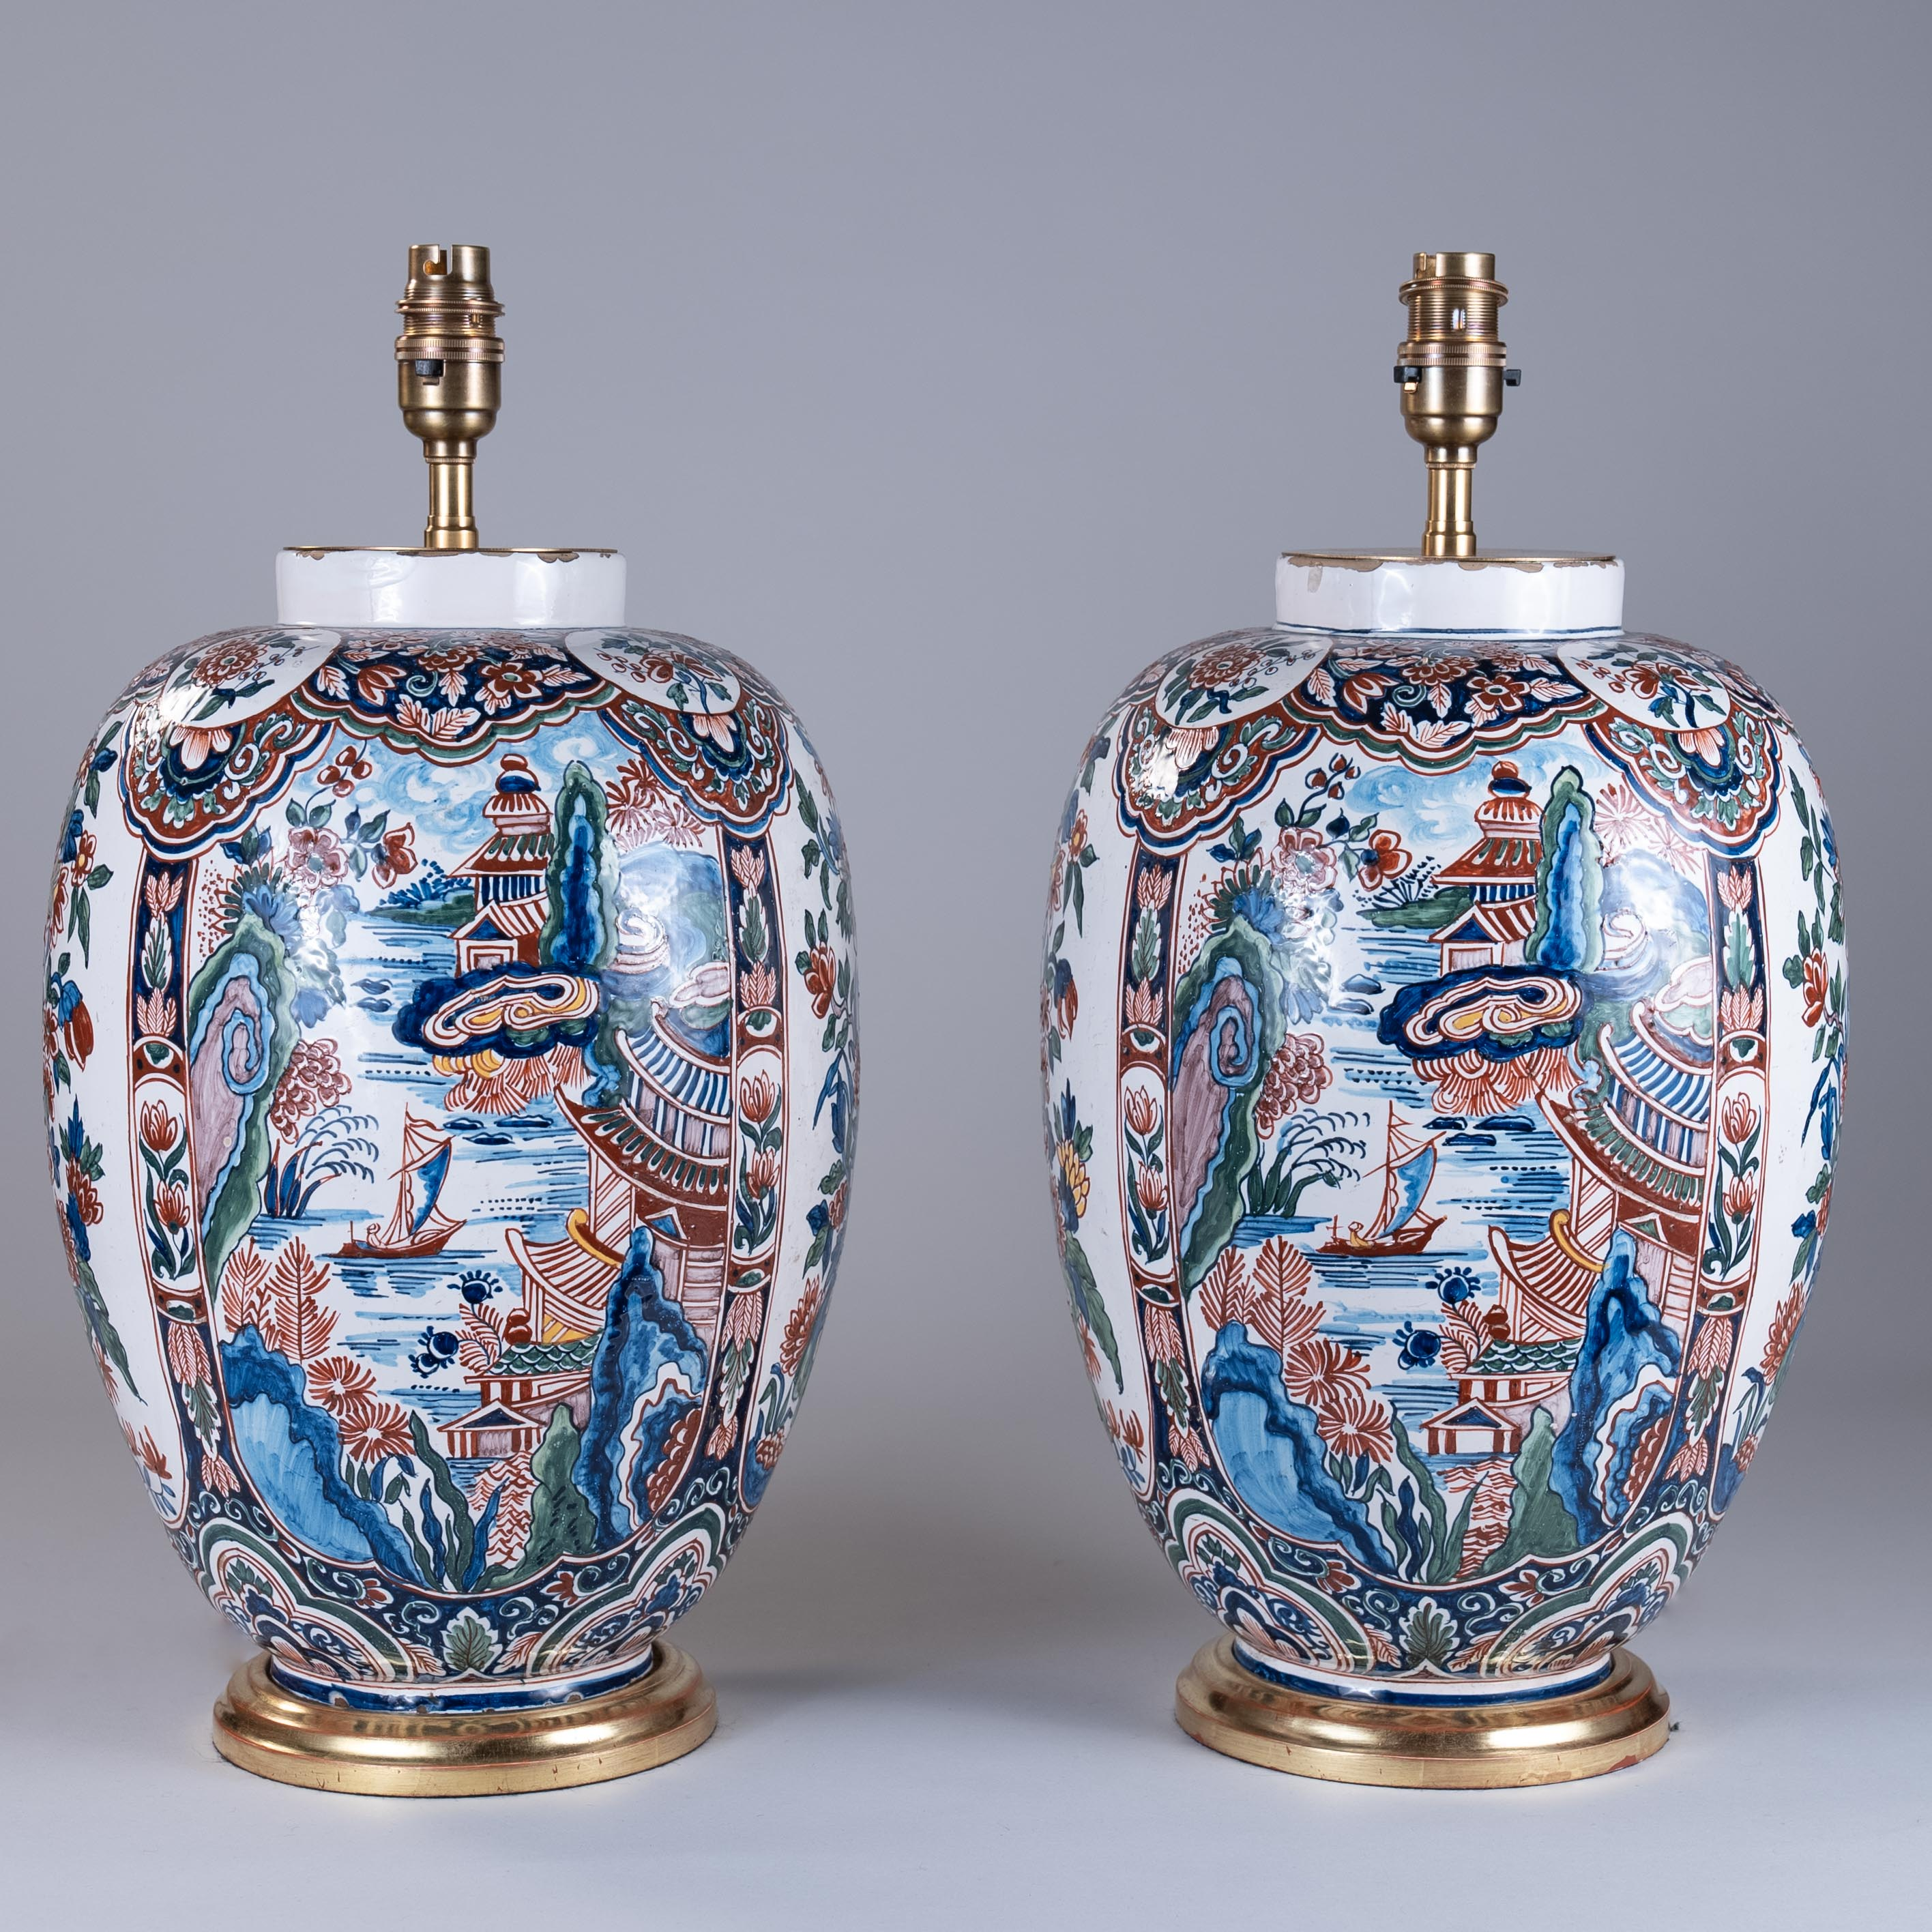 Pair of Early 19th Century Dutch Delft Vases as Lamps